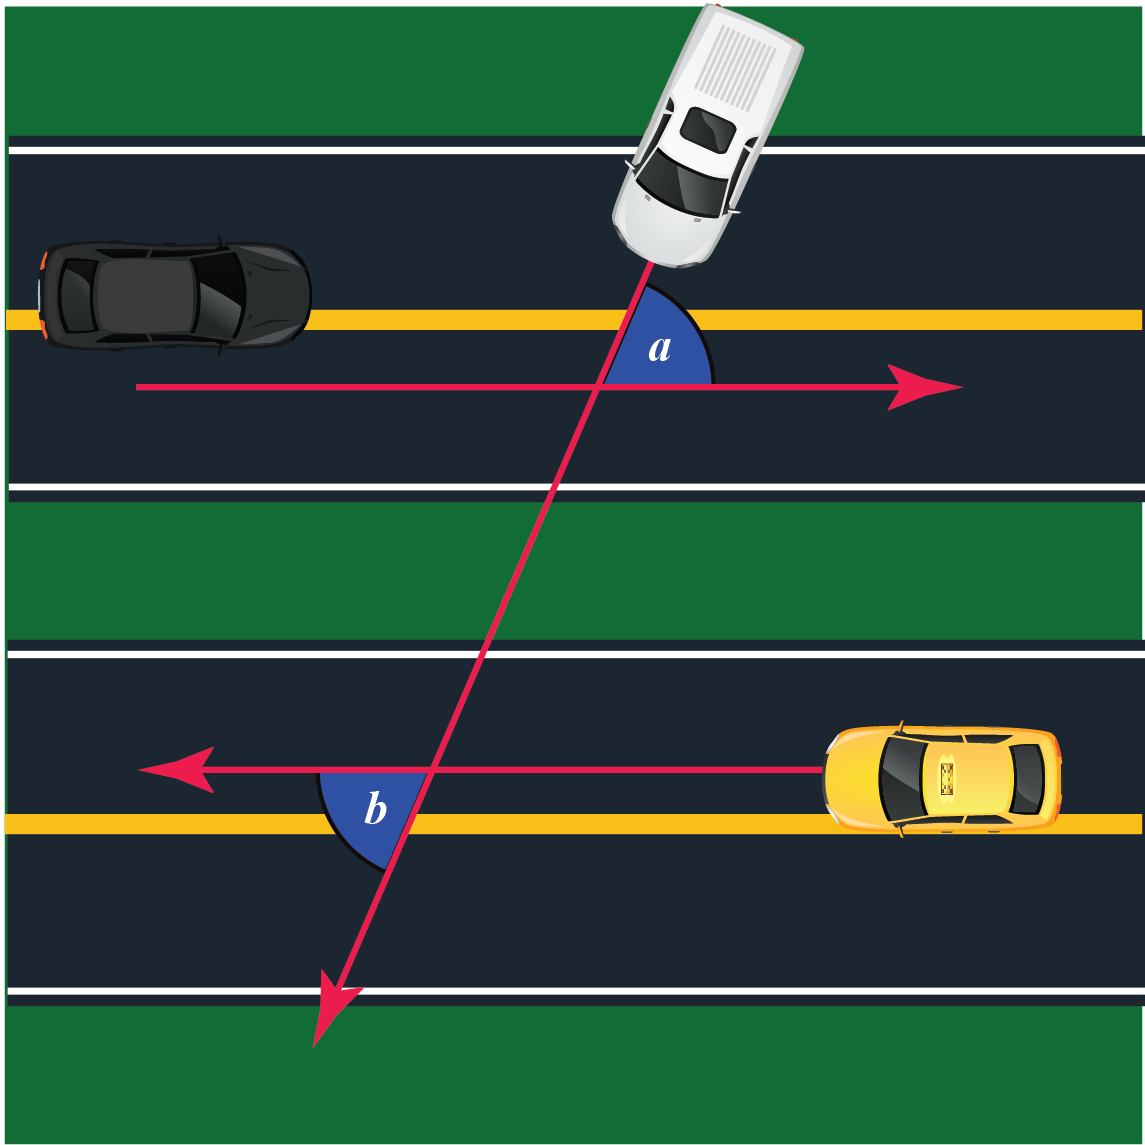 alternate angles example1 - two parallel roads and another road cutting them